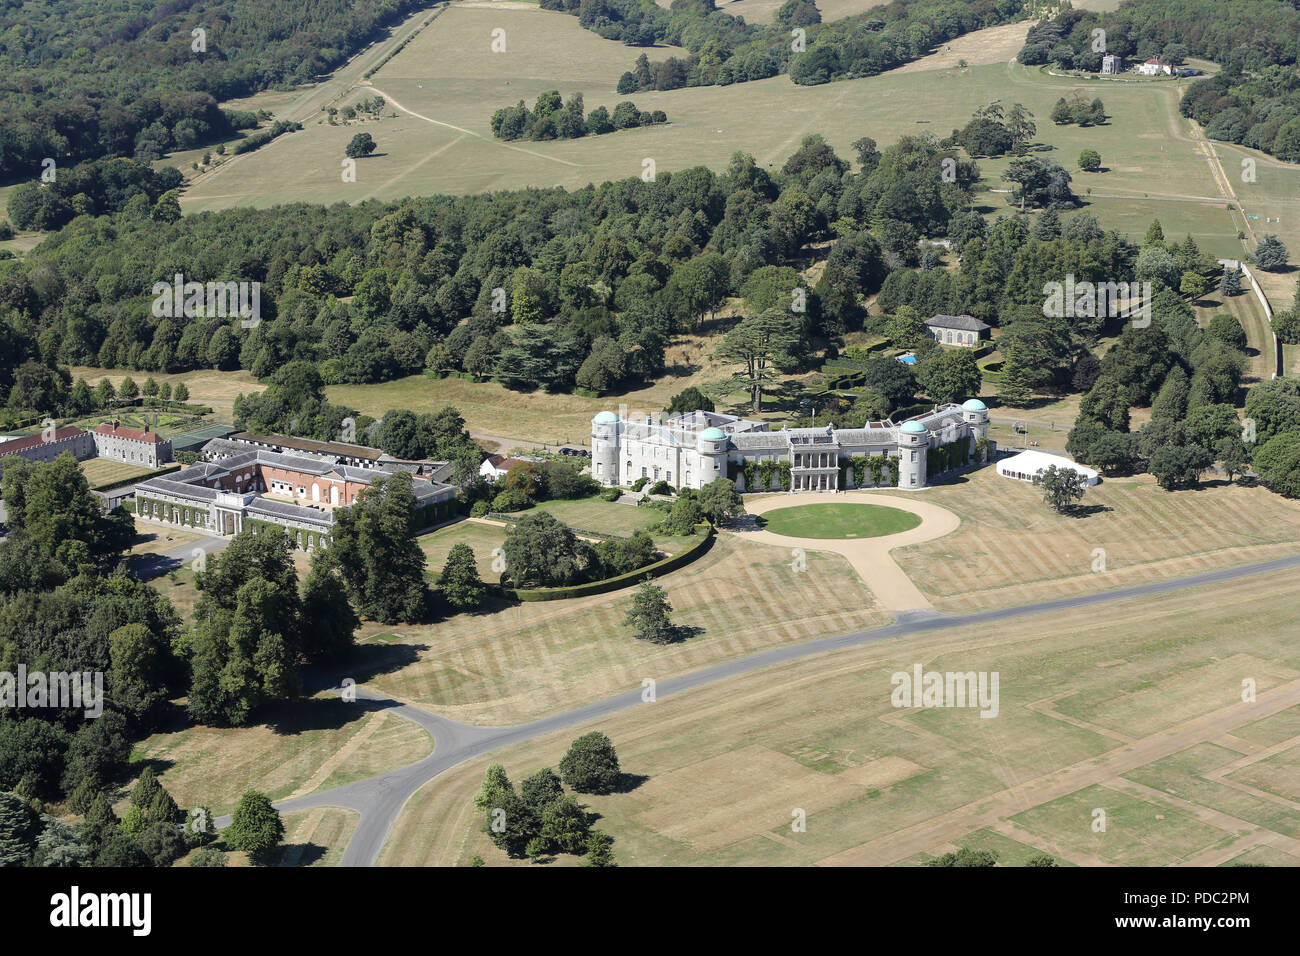 Aerial view of Goodwood House, home of the Duke of Richmond & Gordon - Stock Image